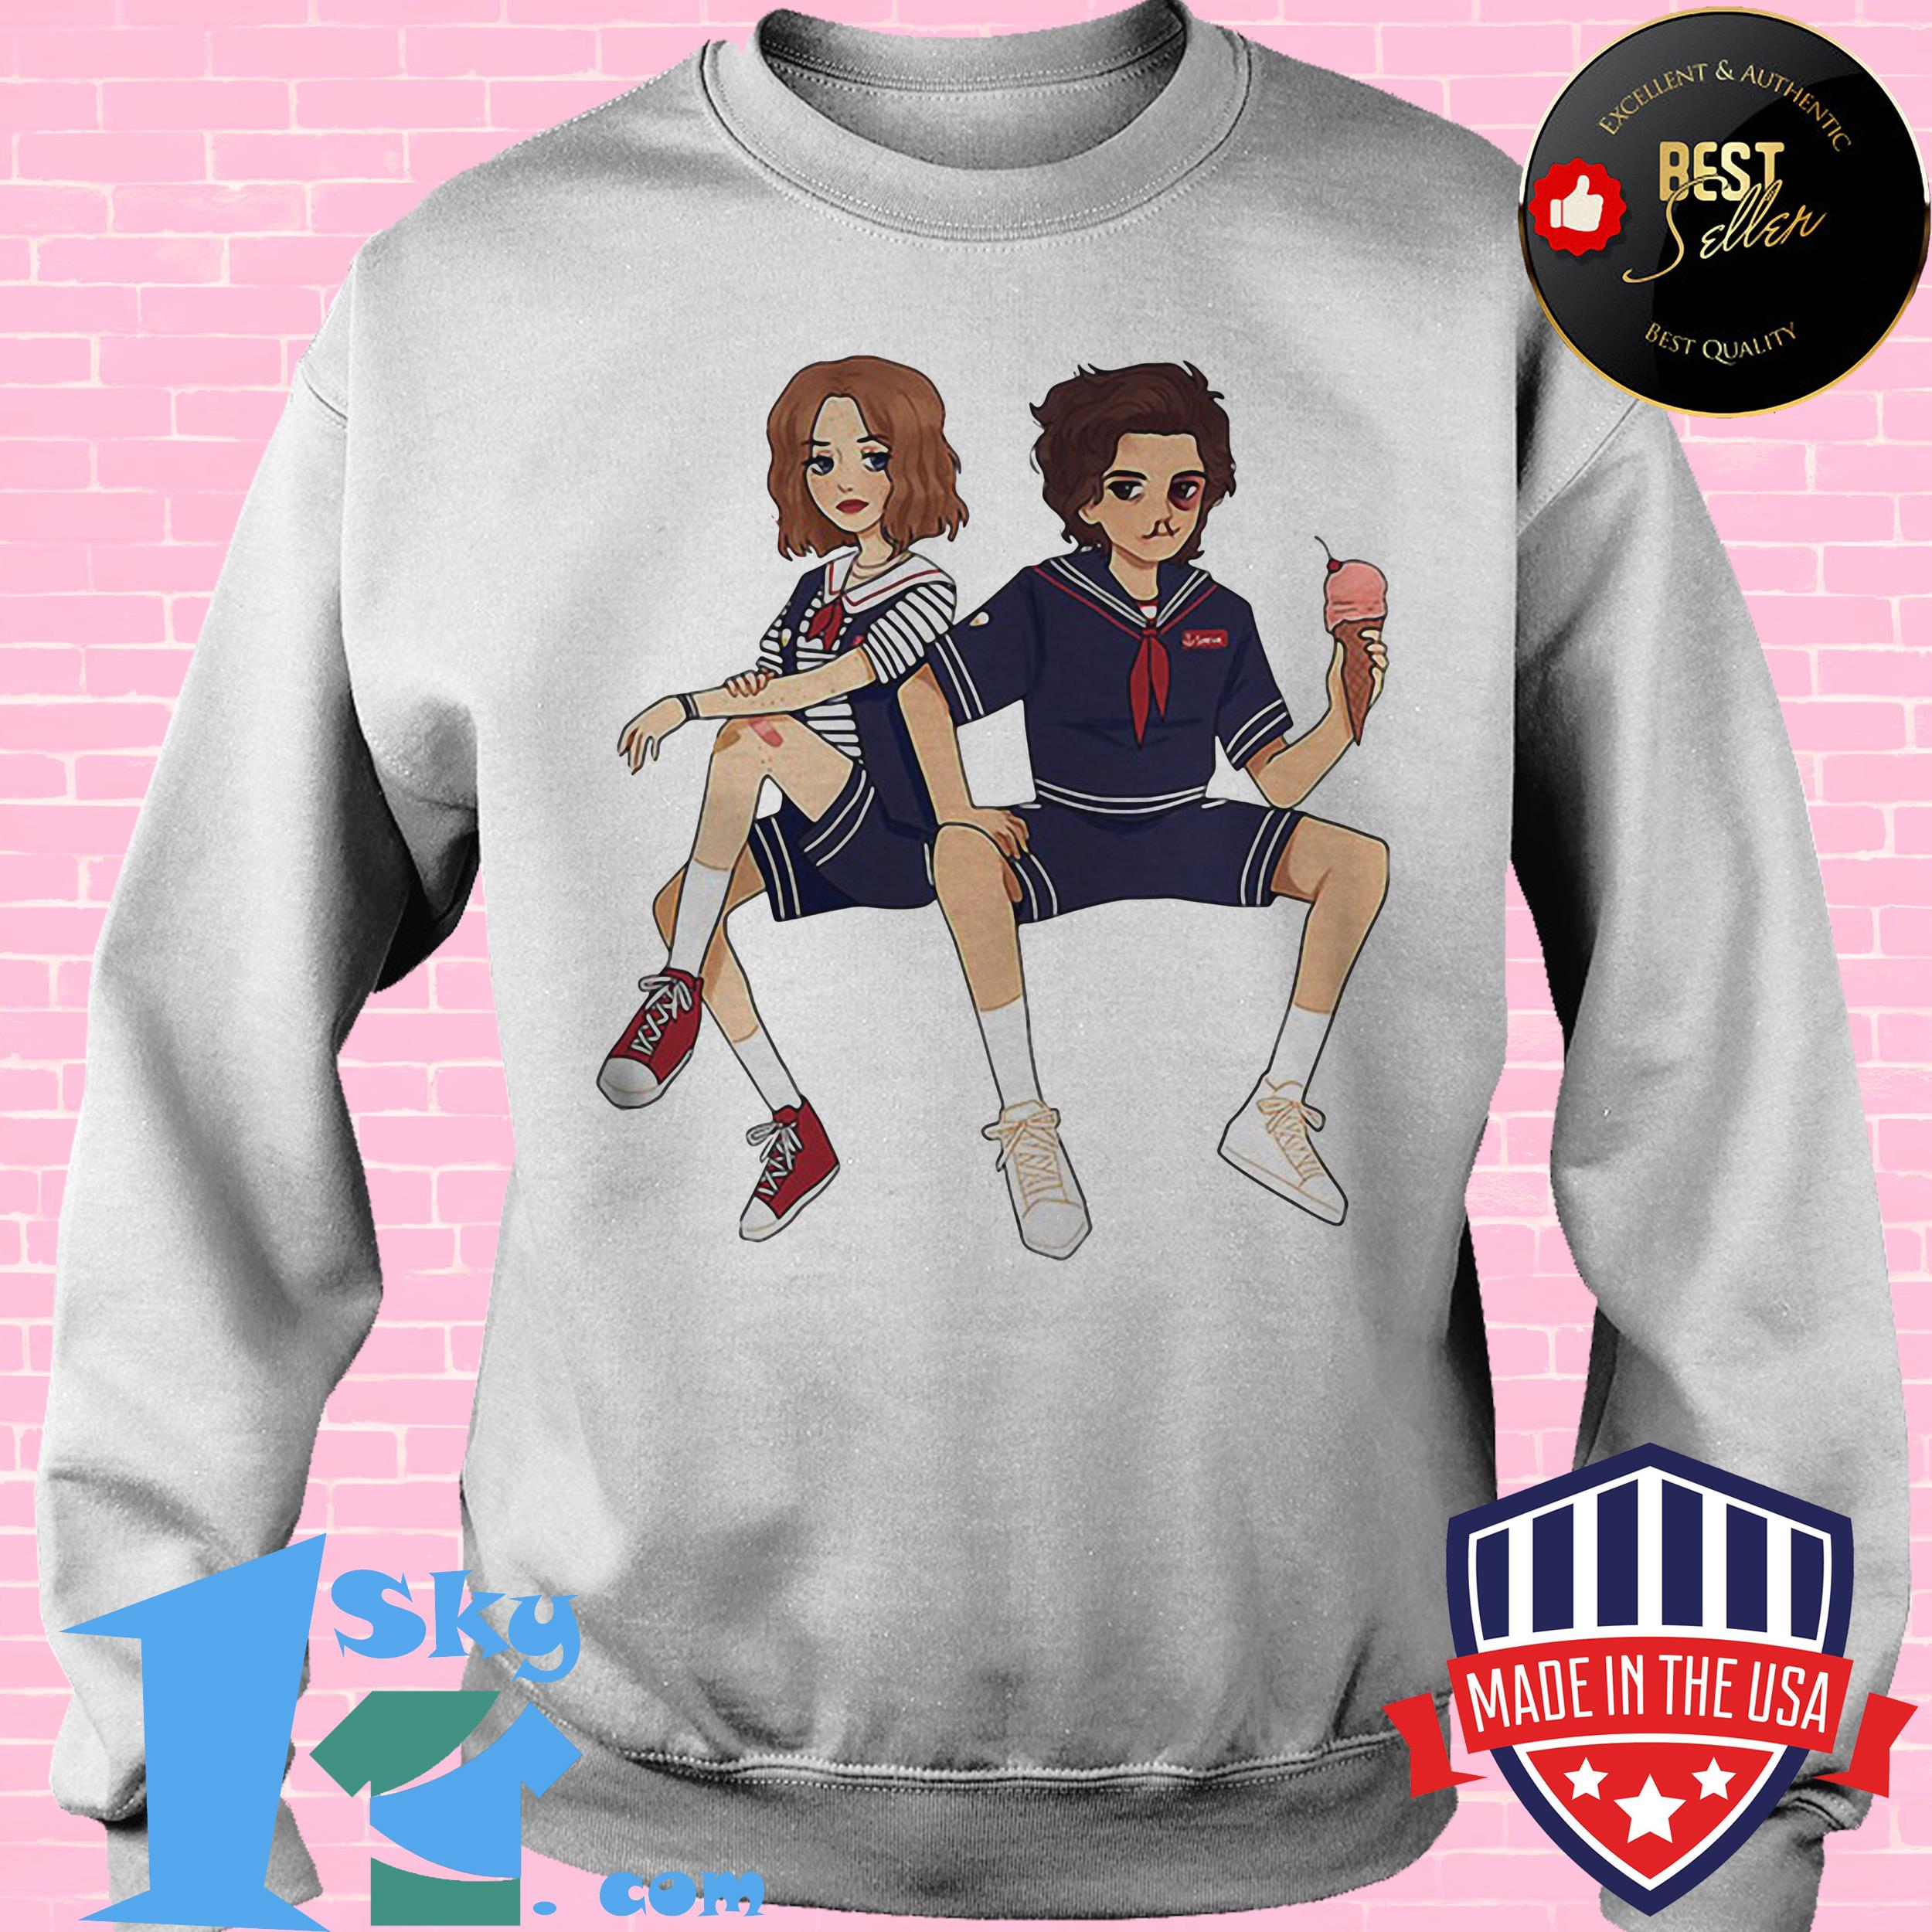 stranger things scoops ahoy ice cream parlor sweatshirt - Stranger Things Scoops Ahoy Ice Cream Parlor shirt